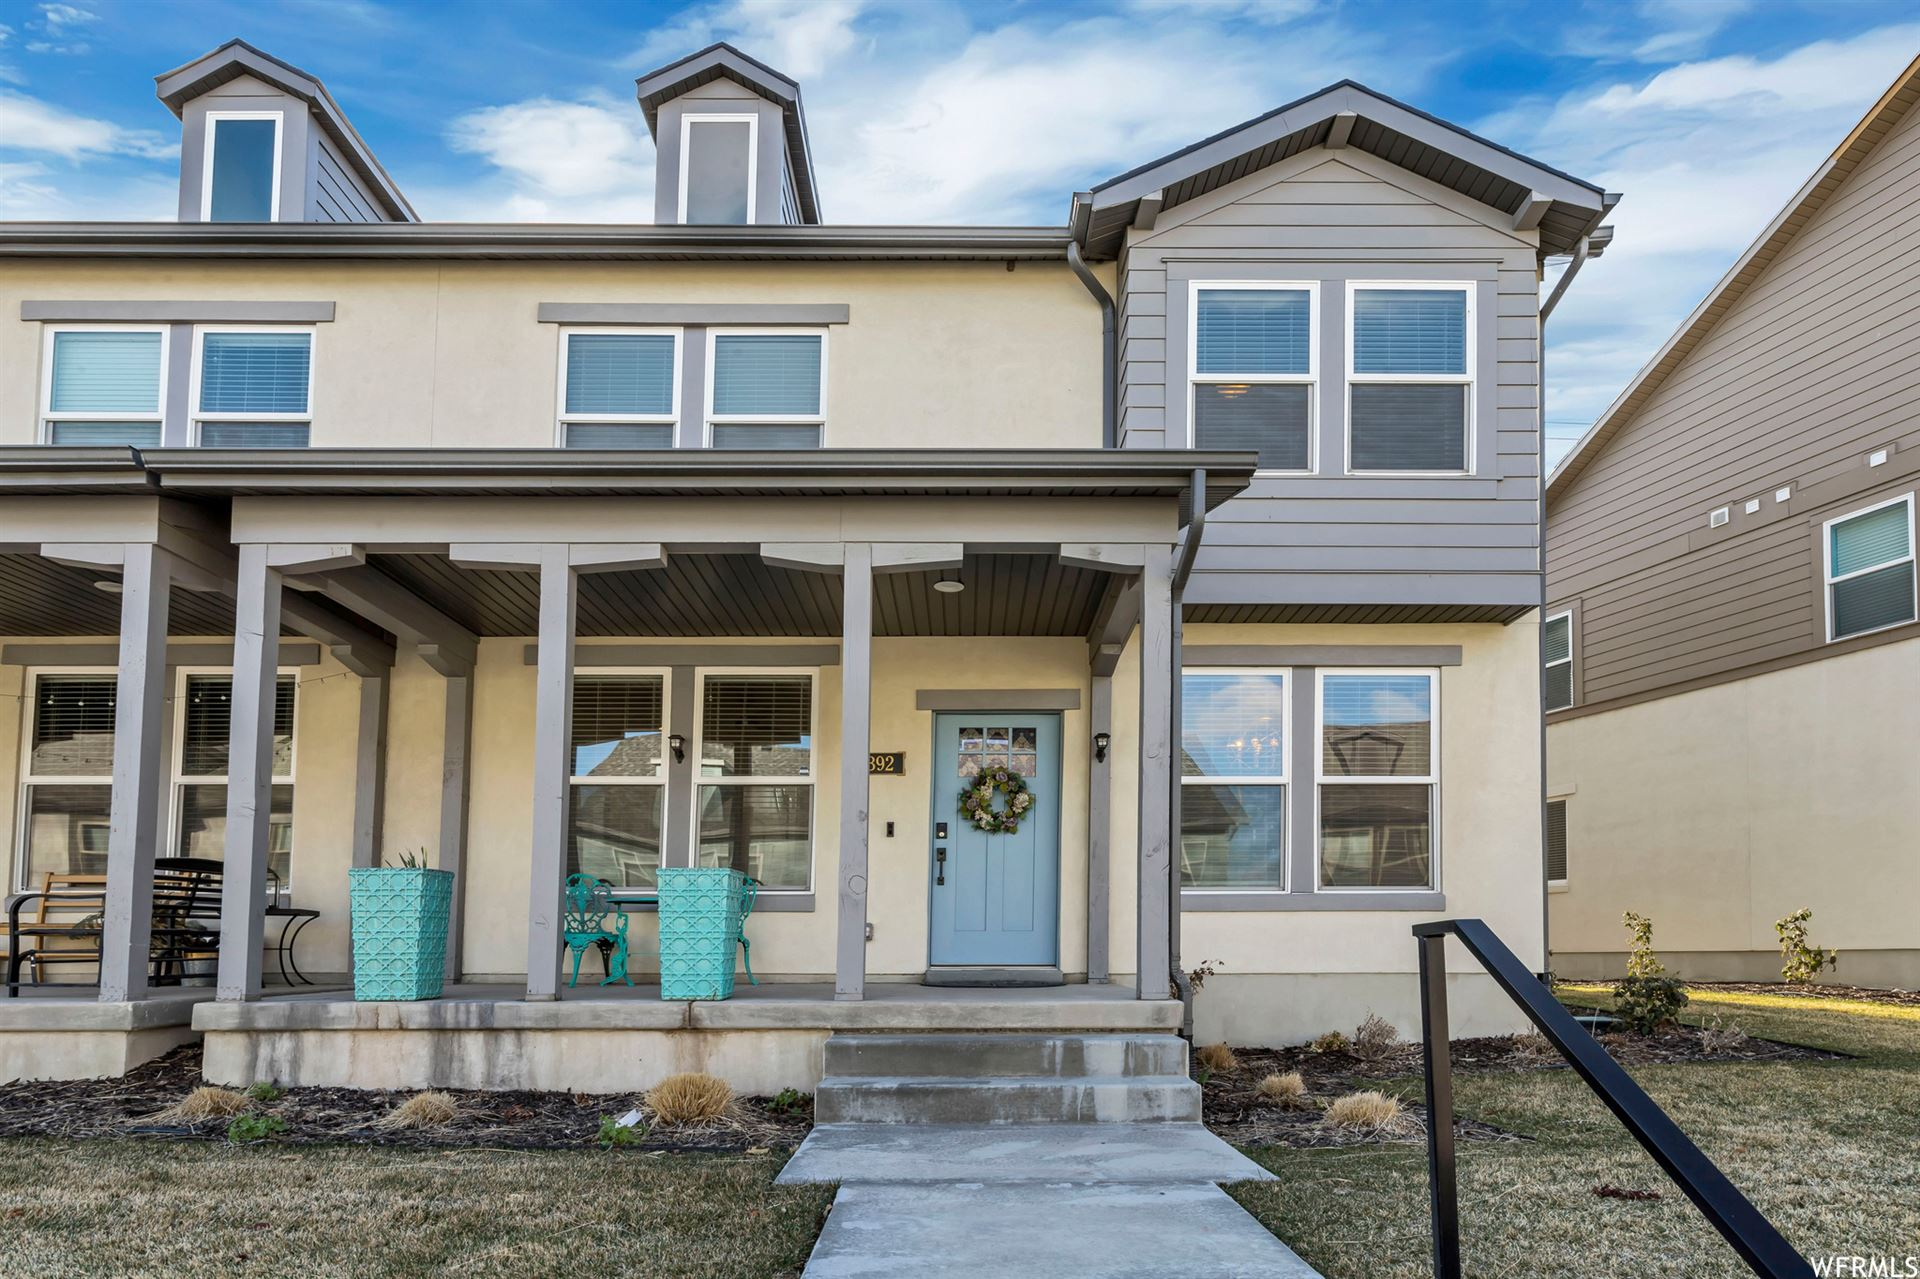 Photo of 6392 W SUGARCANE DR, South Jordan, UT 84009 (MLS # 1734375)